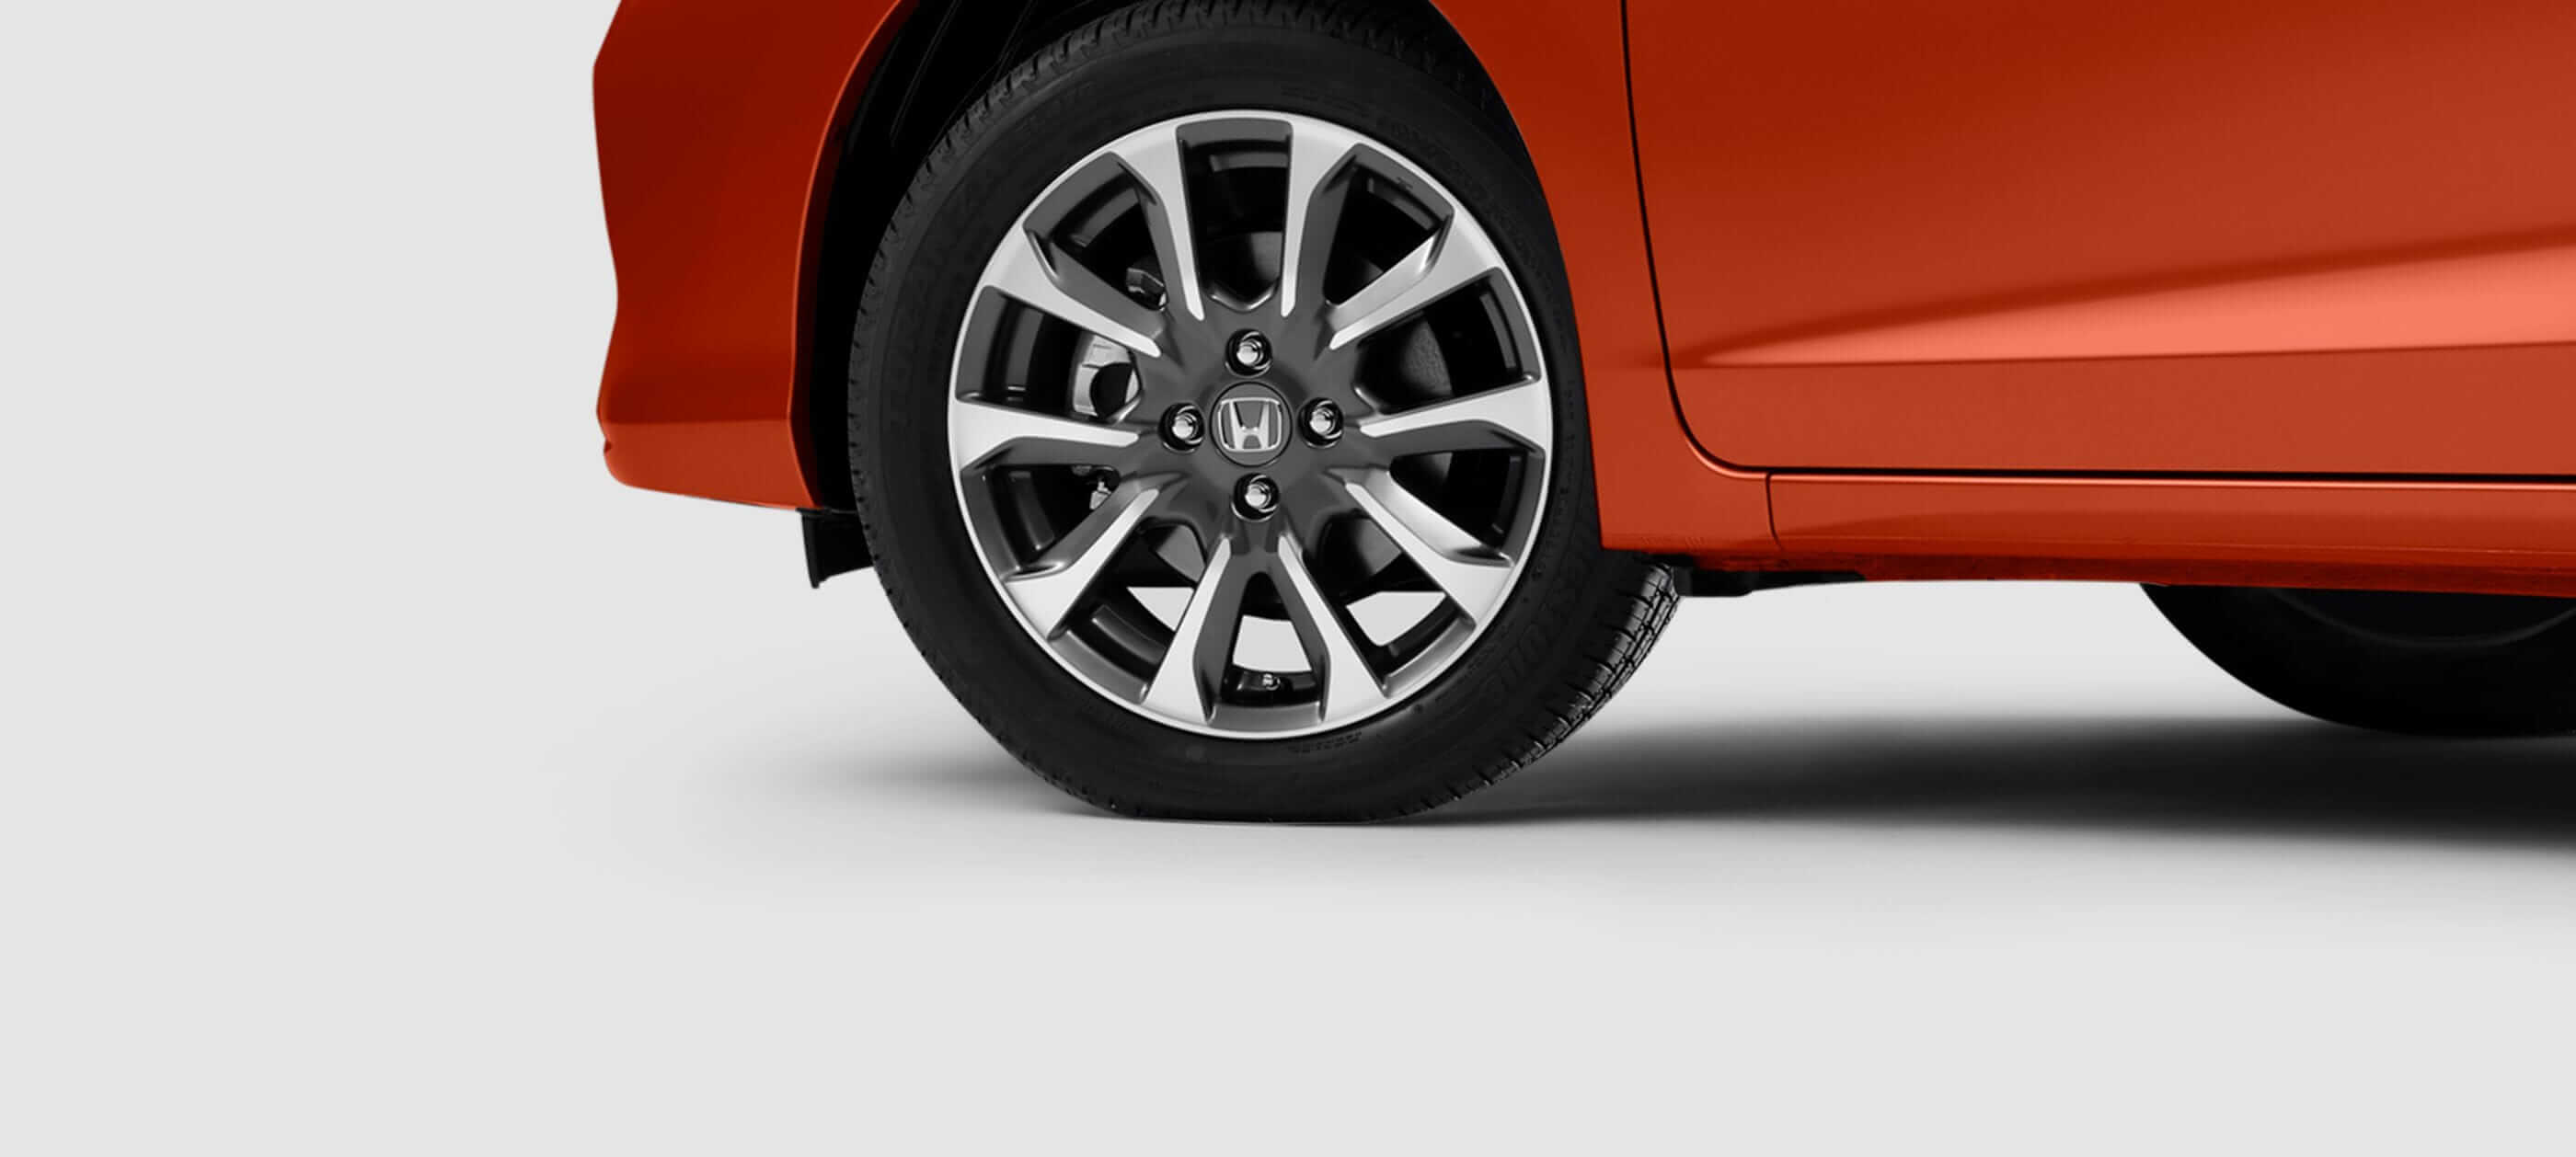 16-Inch Accessory Alloy Wheels